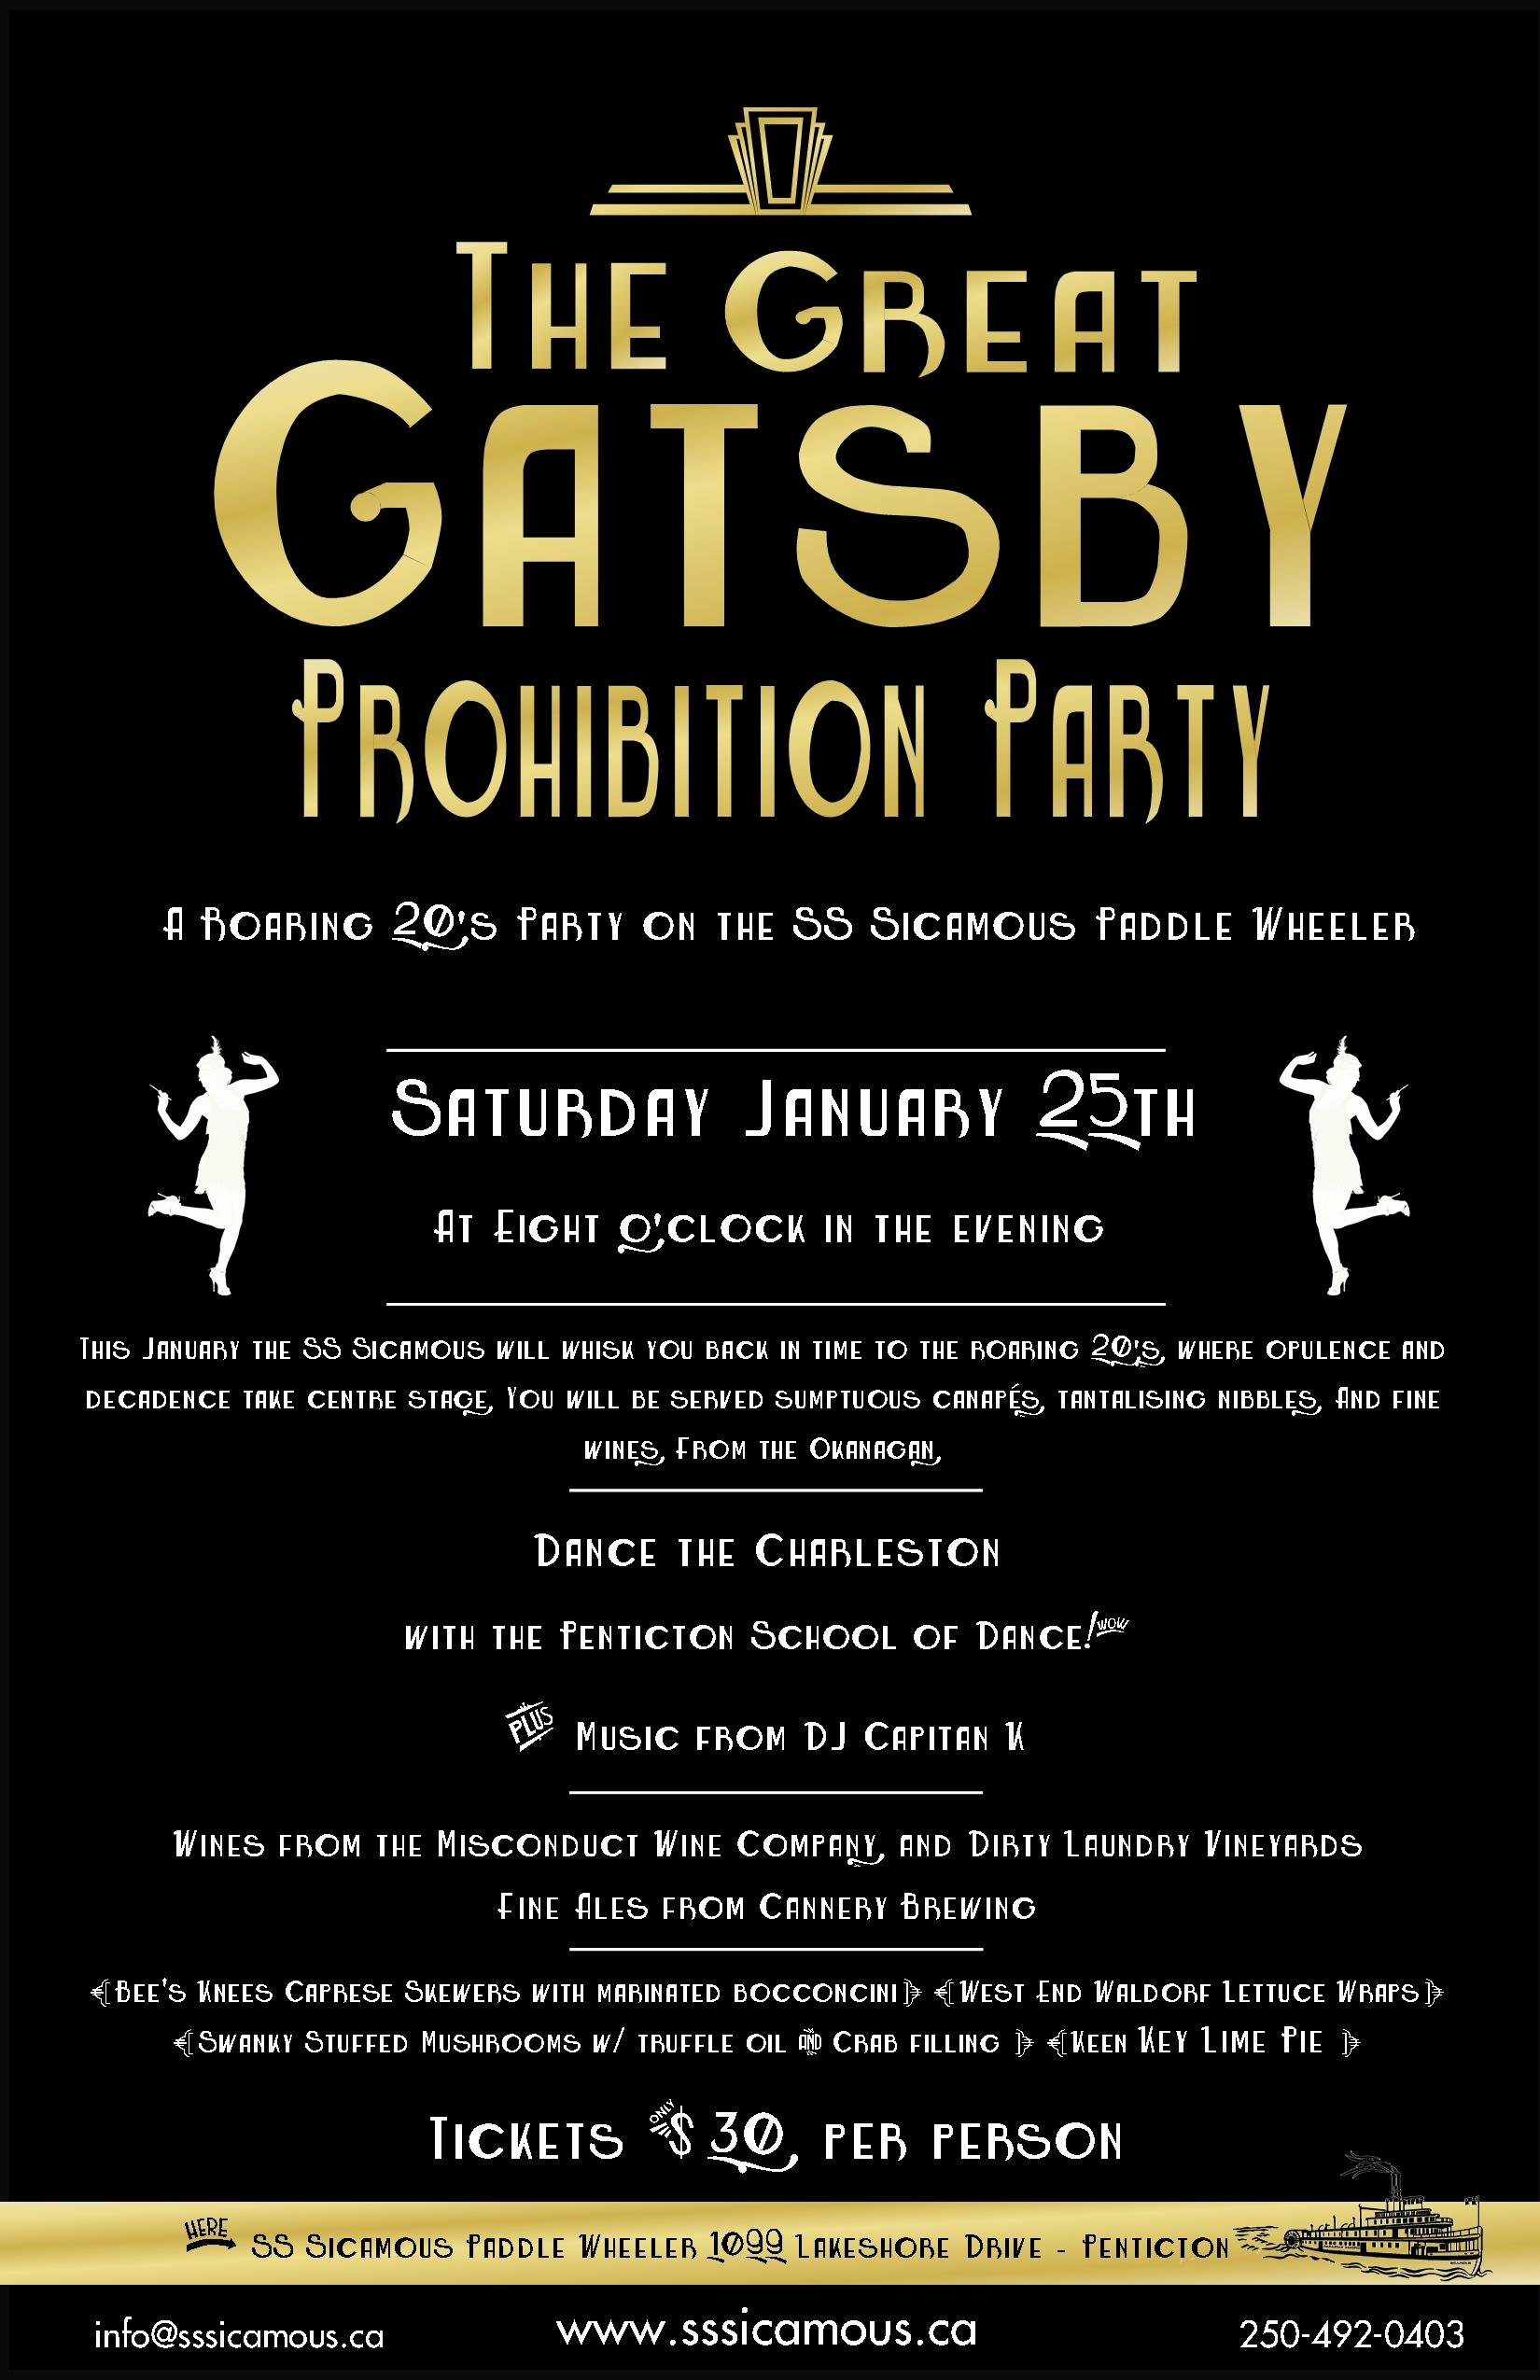 The Great Gatsby Prohibition Party